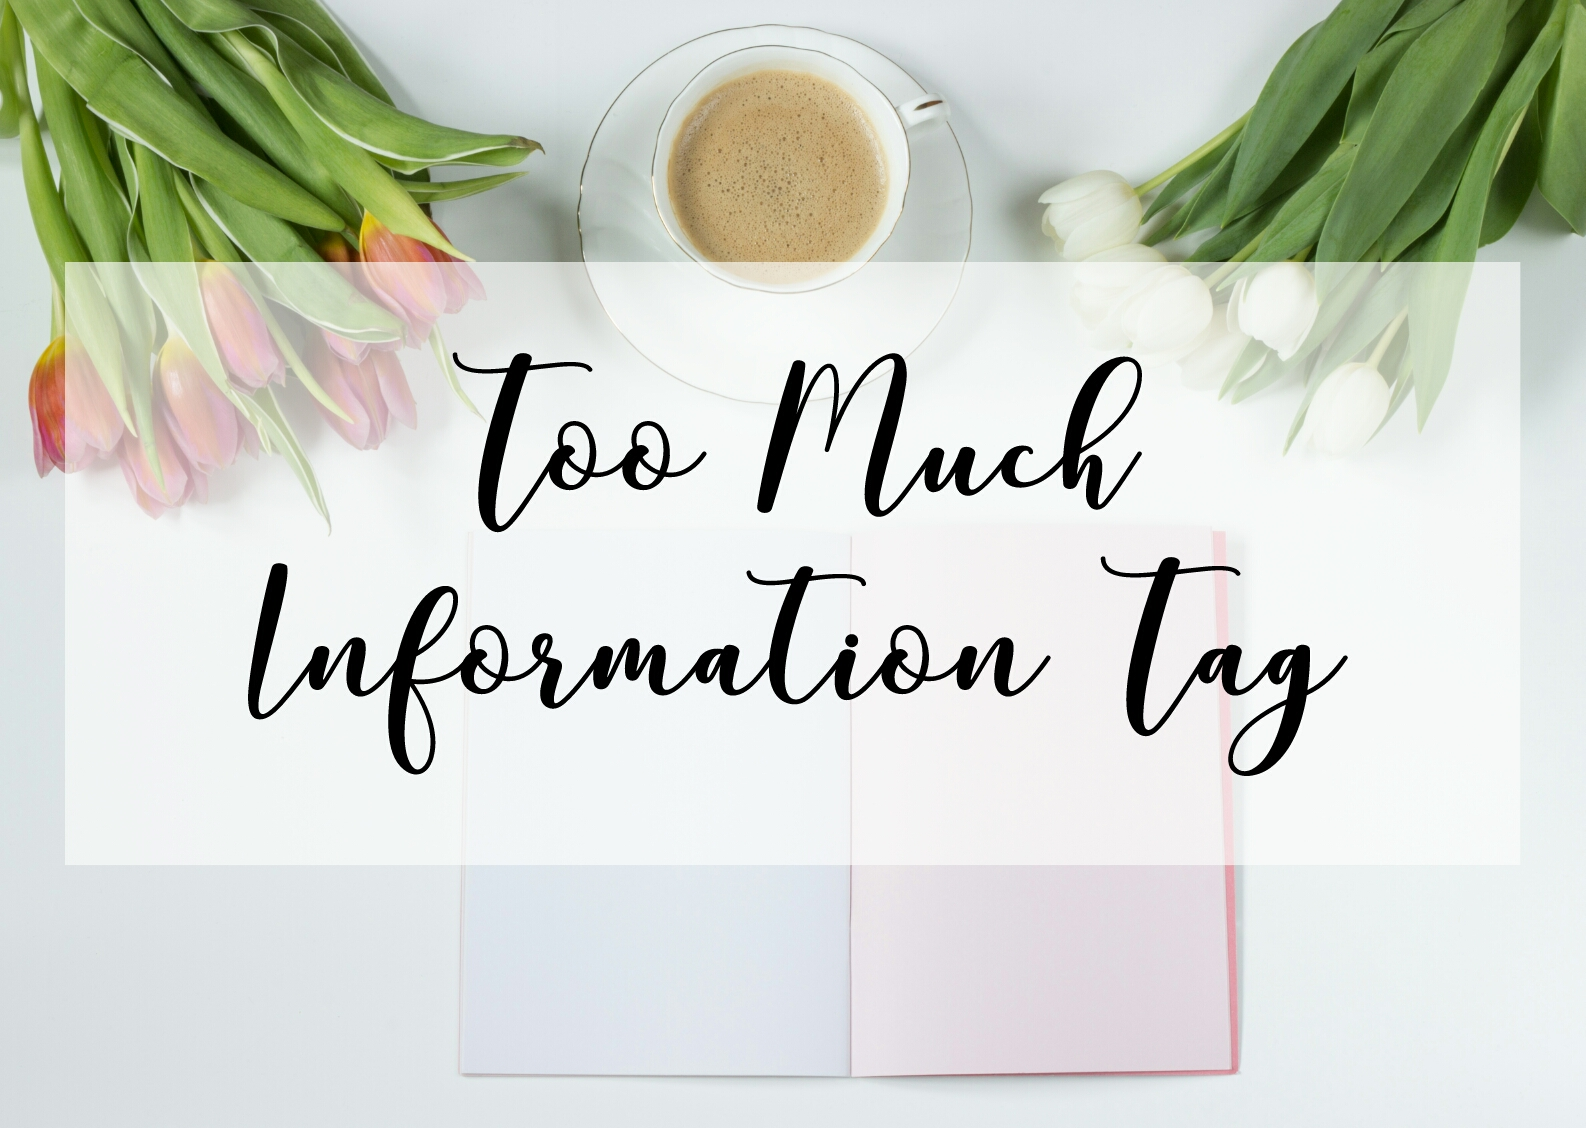 too much information tag